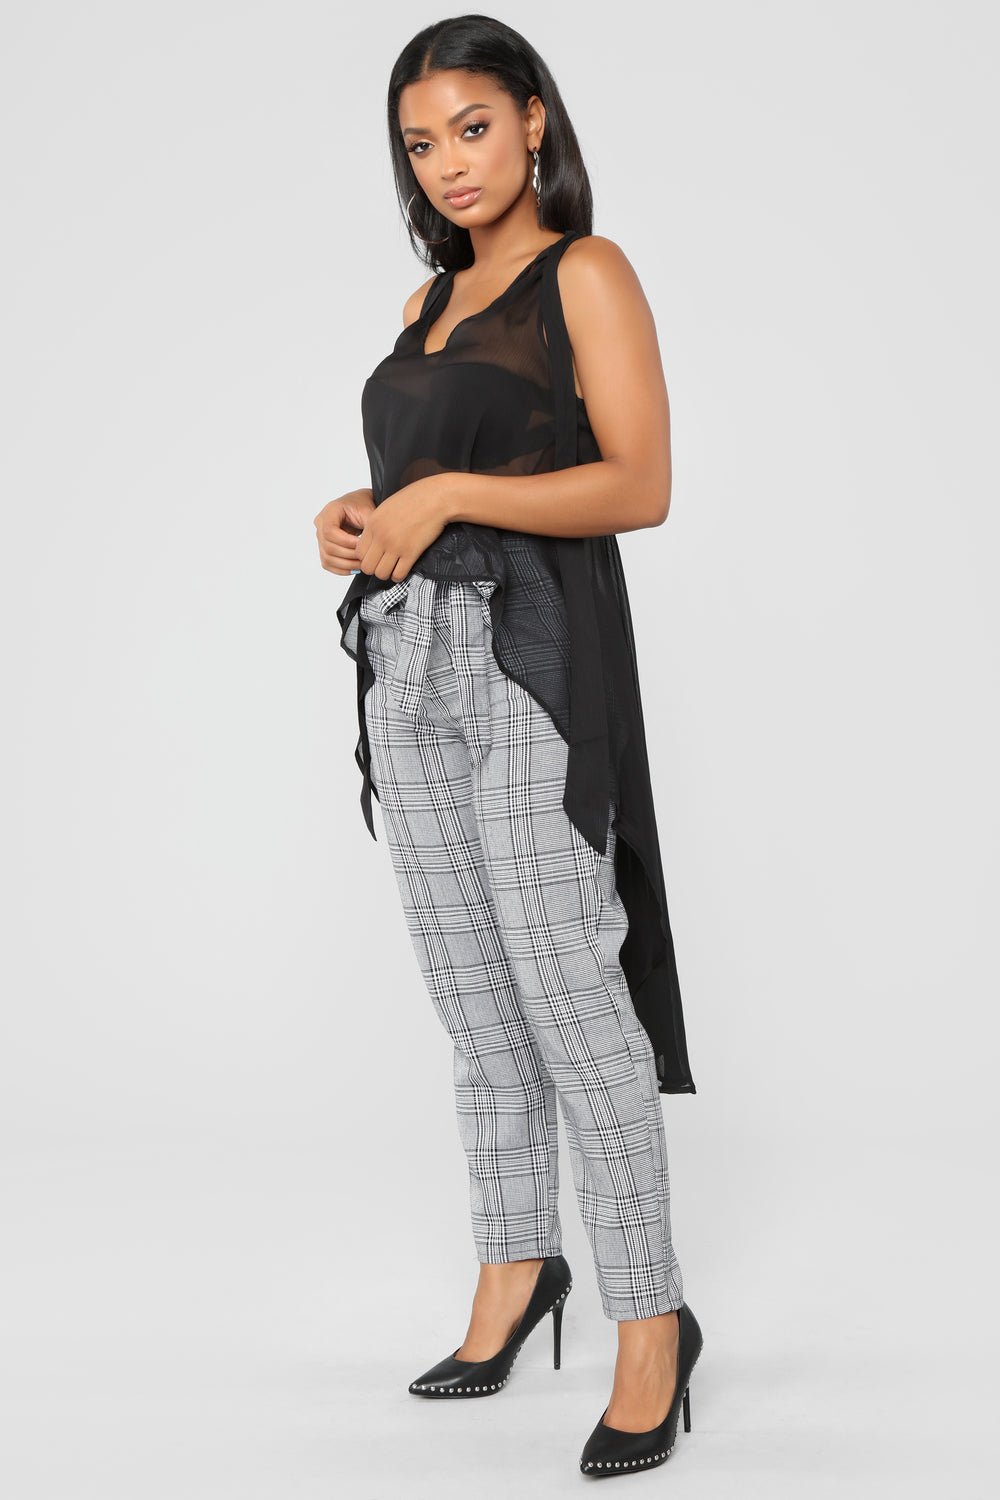 Days Like These Pants - Black